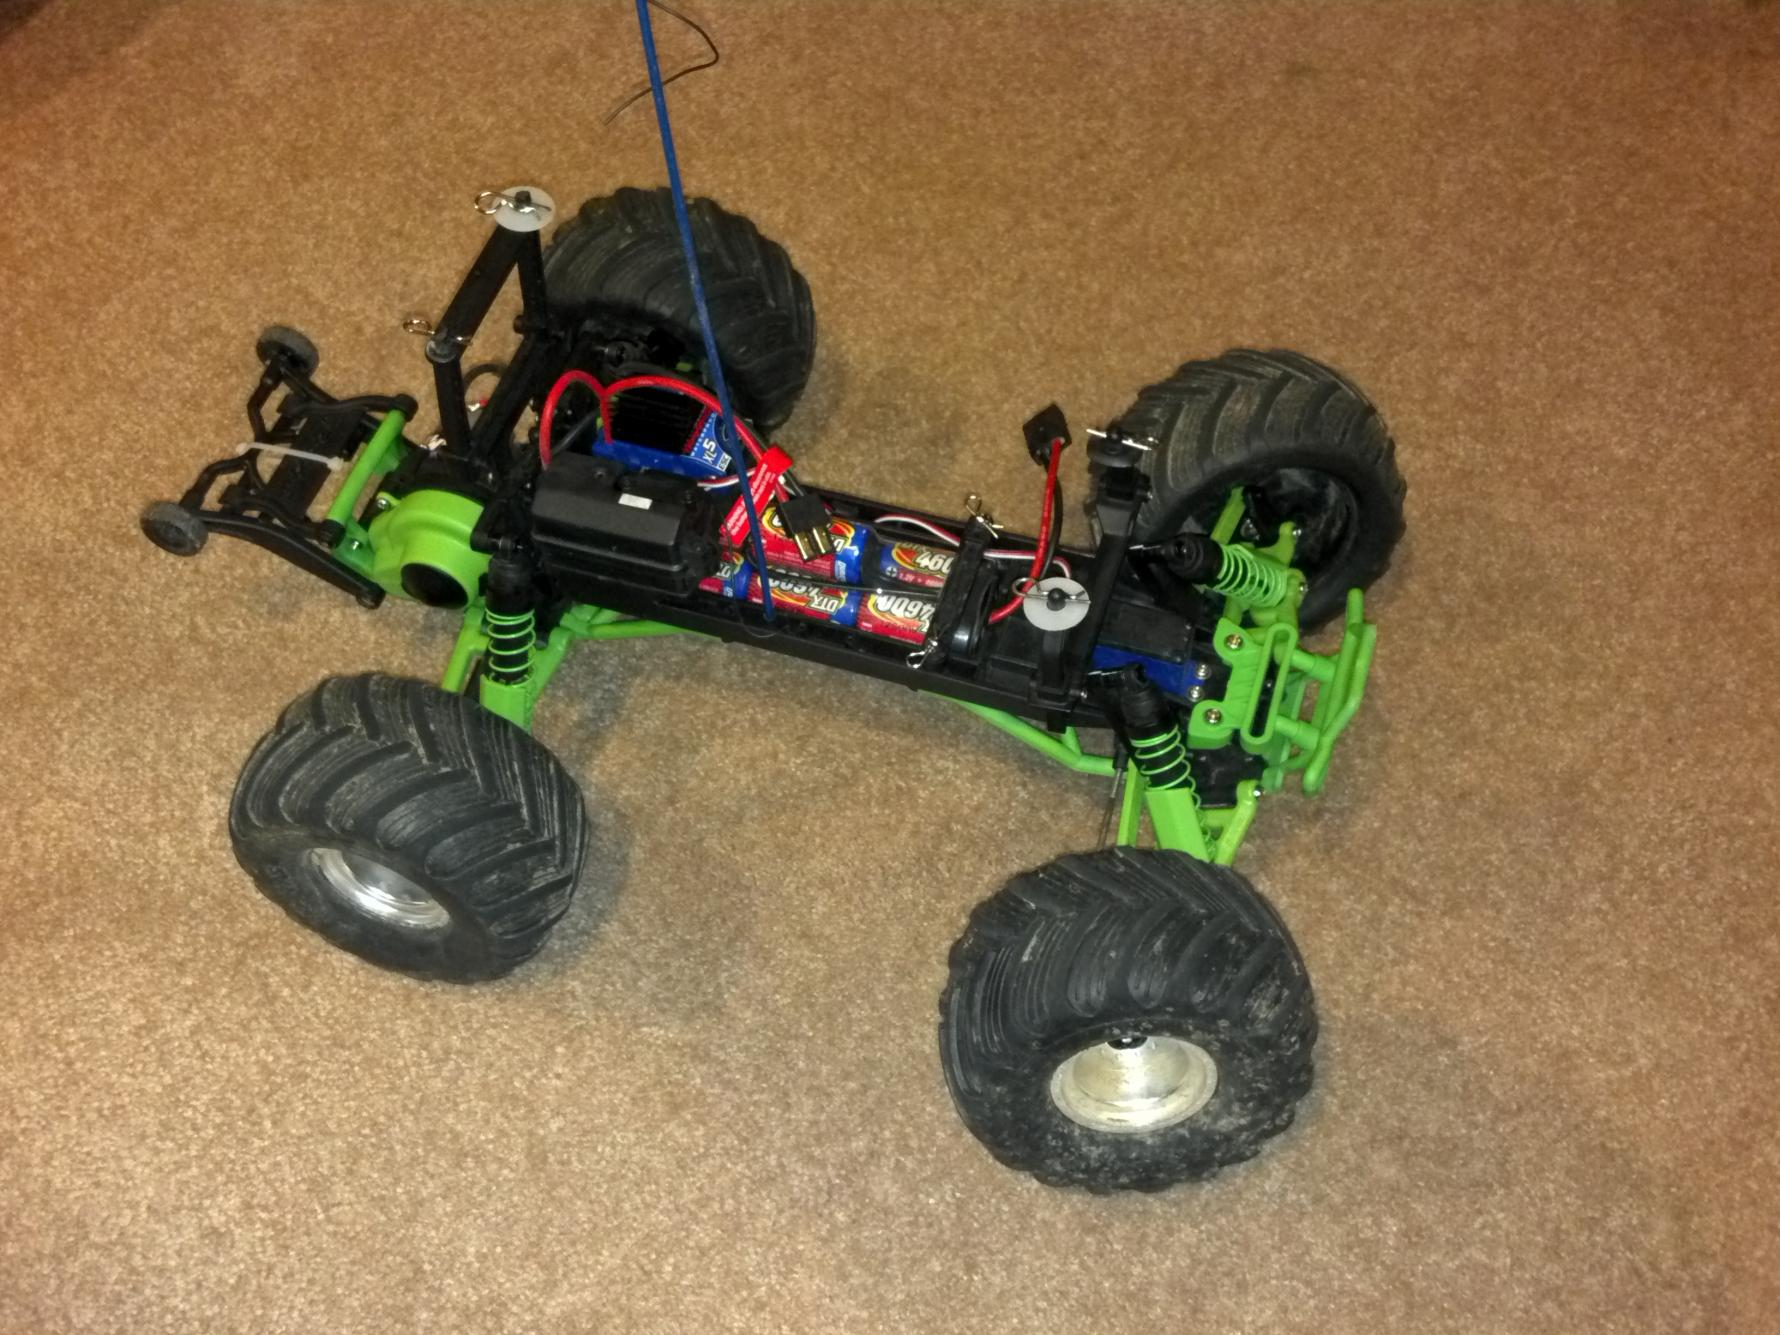 Traxxas Grave Digger Upgrade Project after rpm upgrades before bl upgrade